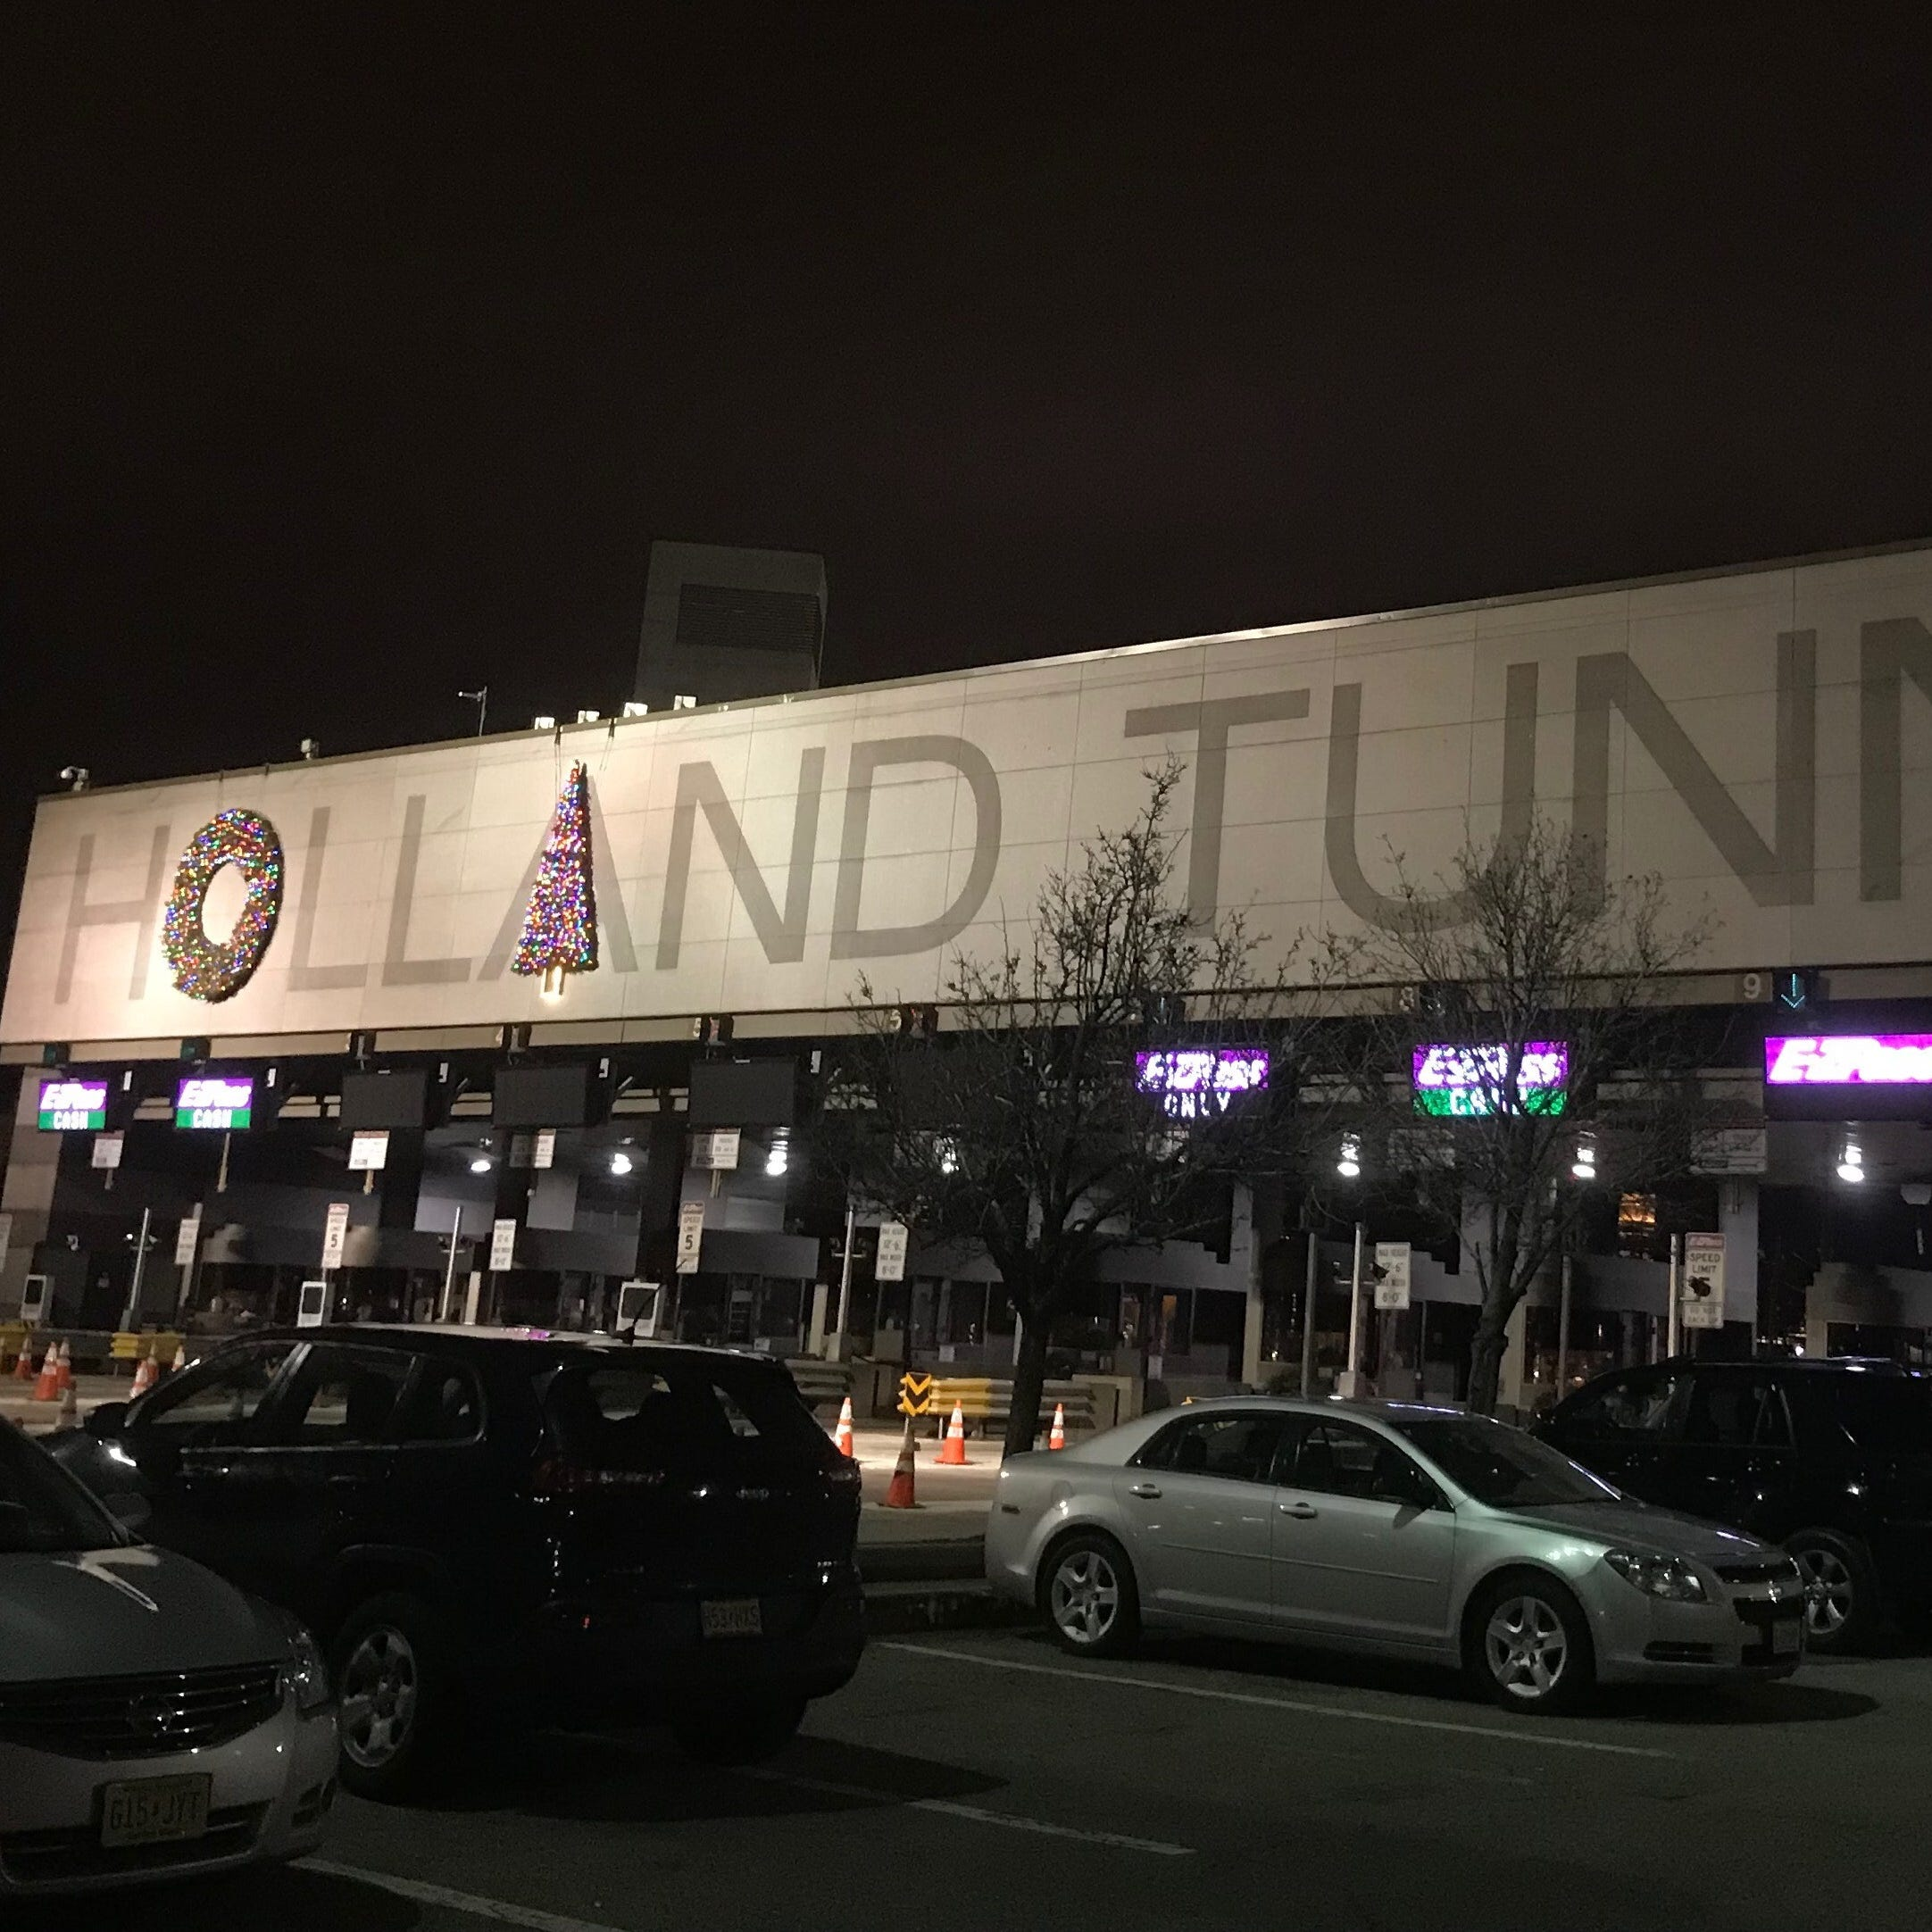 Holland Tunnel wreaths moved after complaints